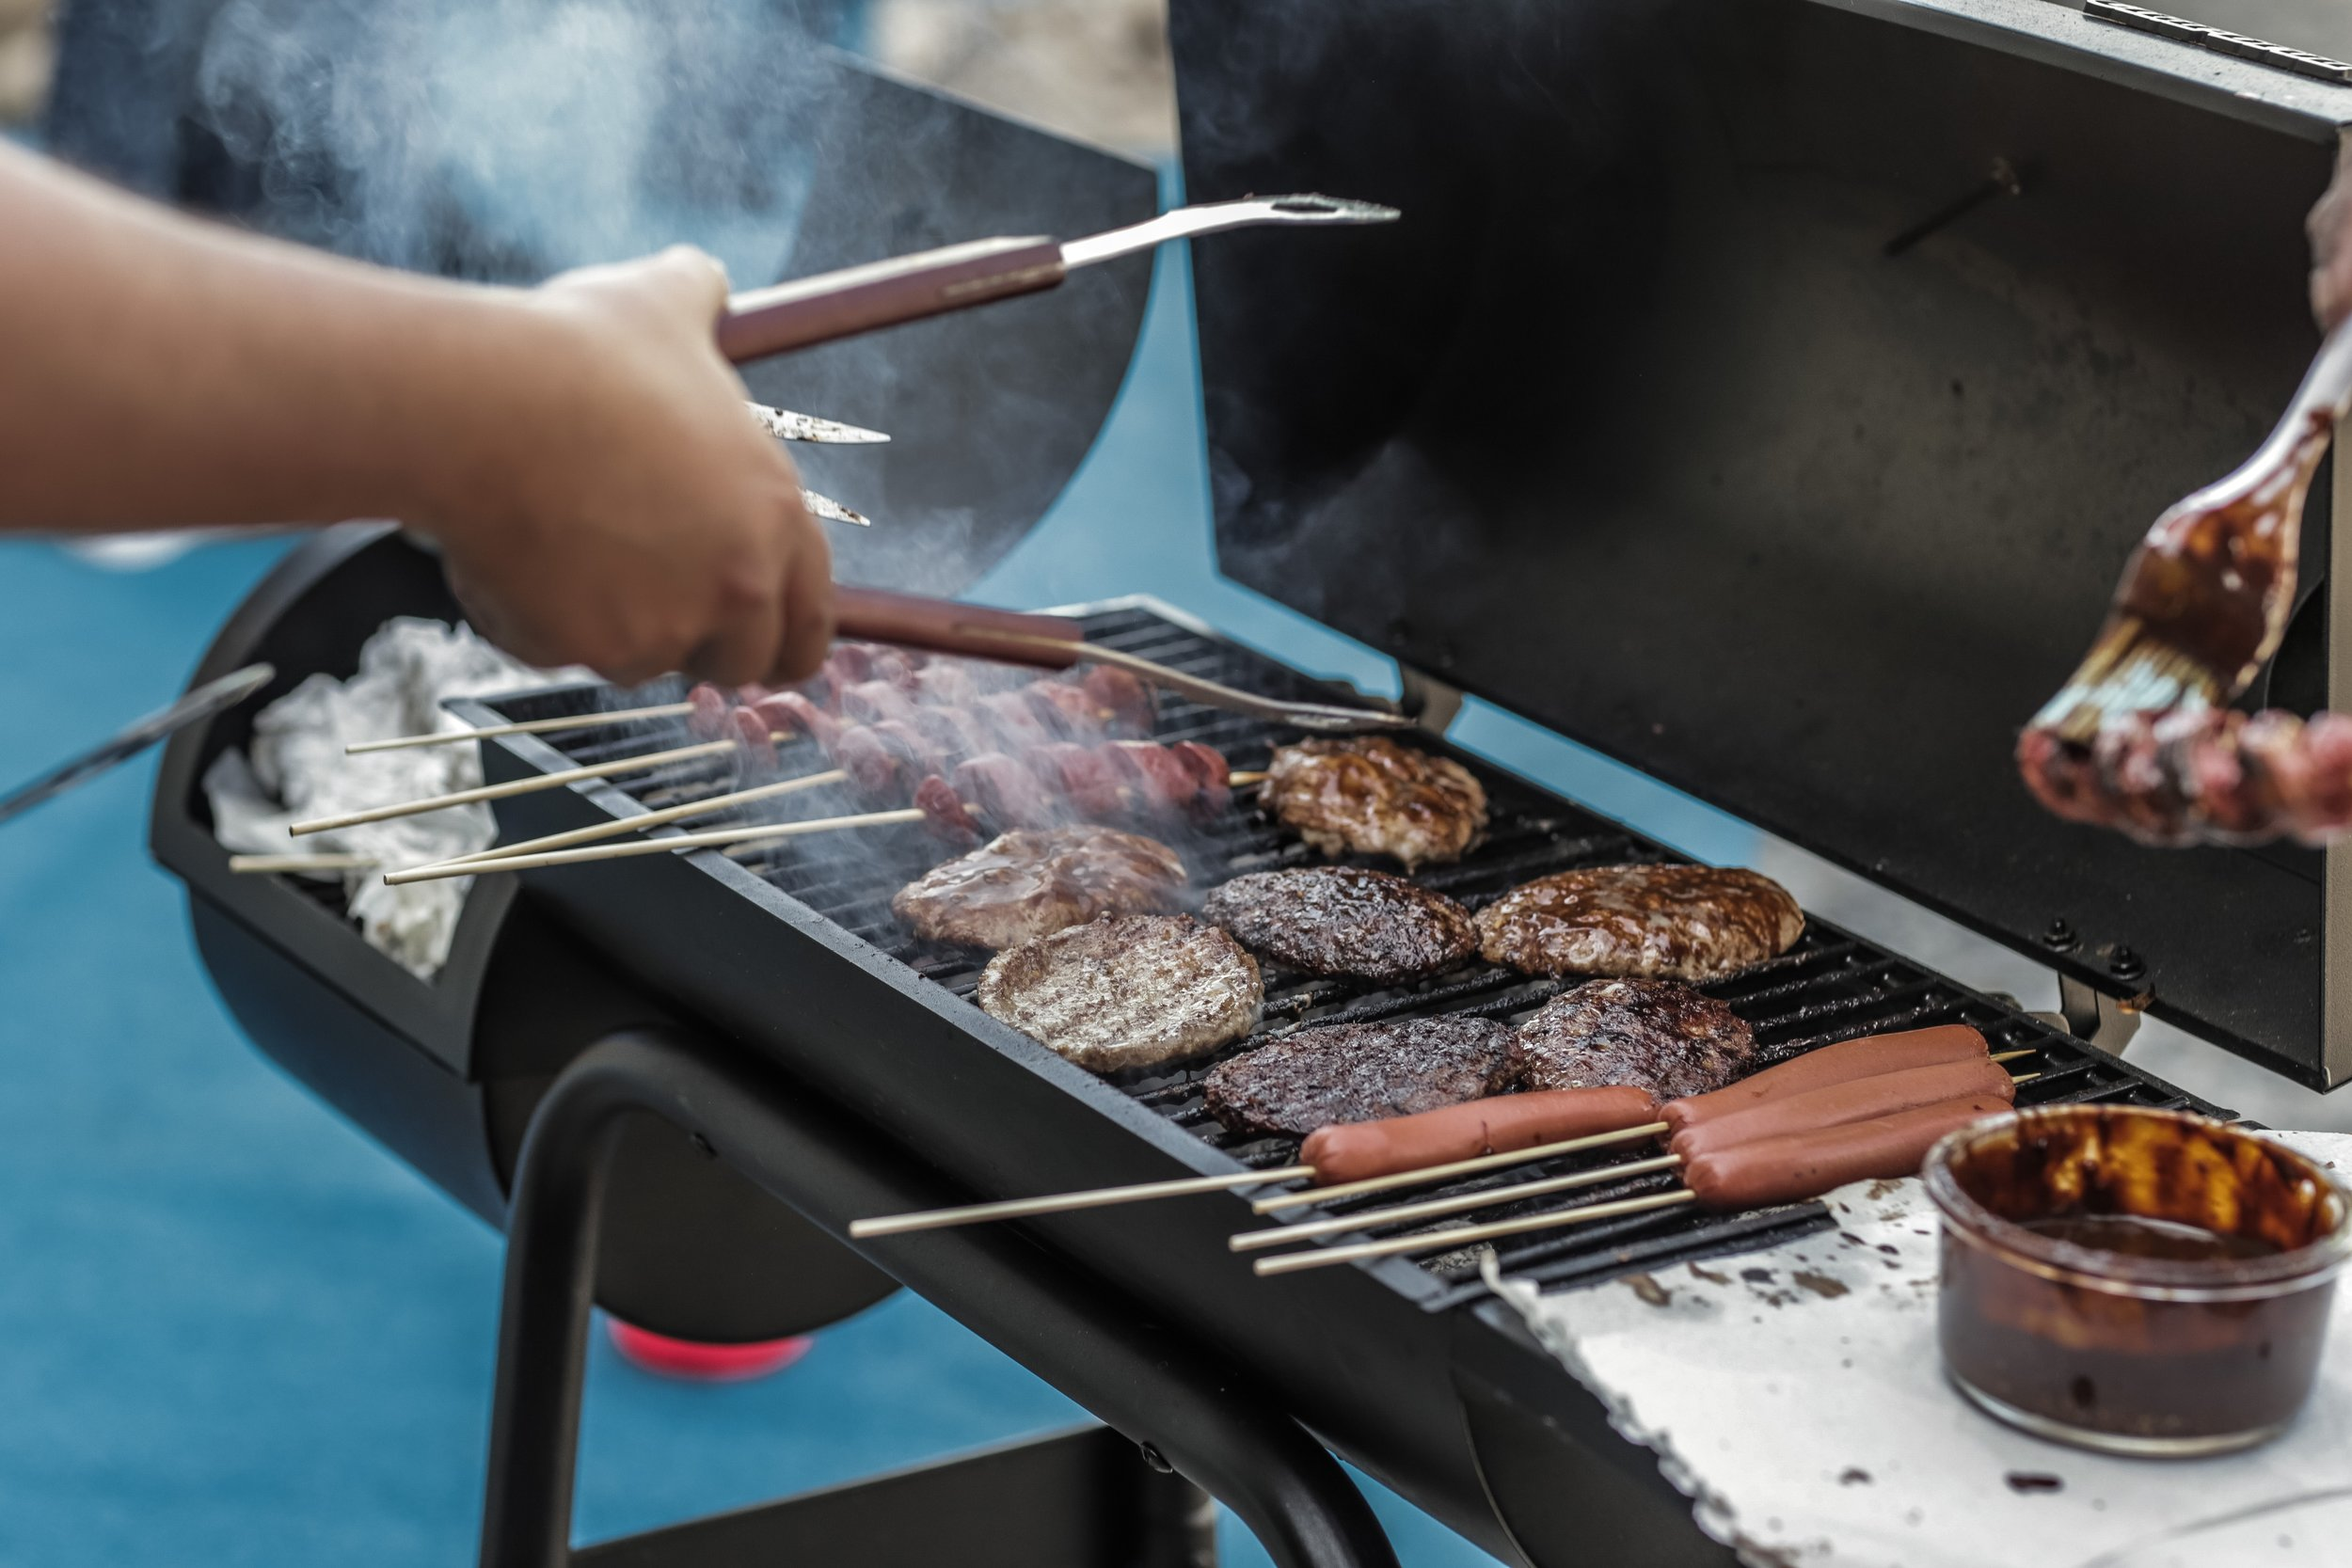 Nothing like grilling on the street // Via Unsplash